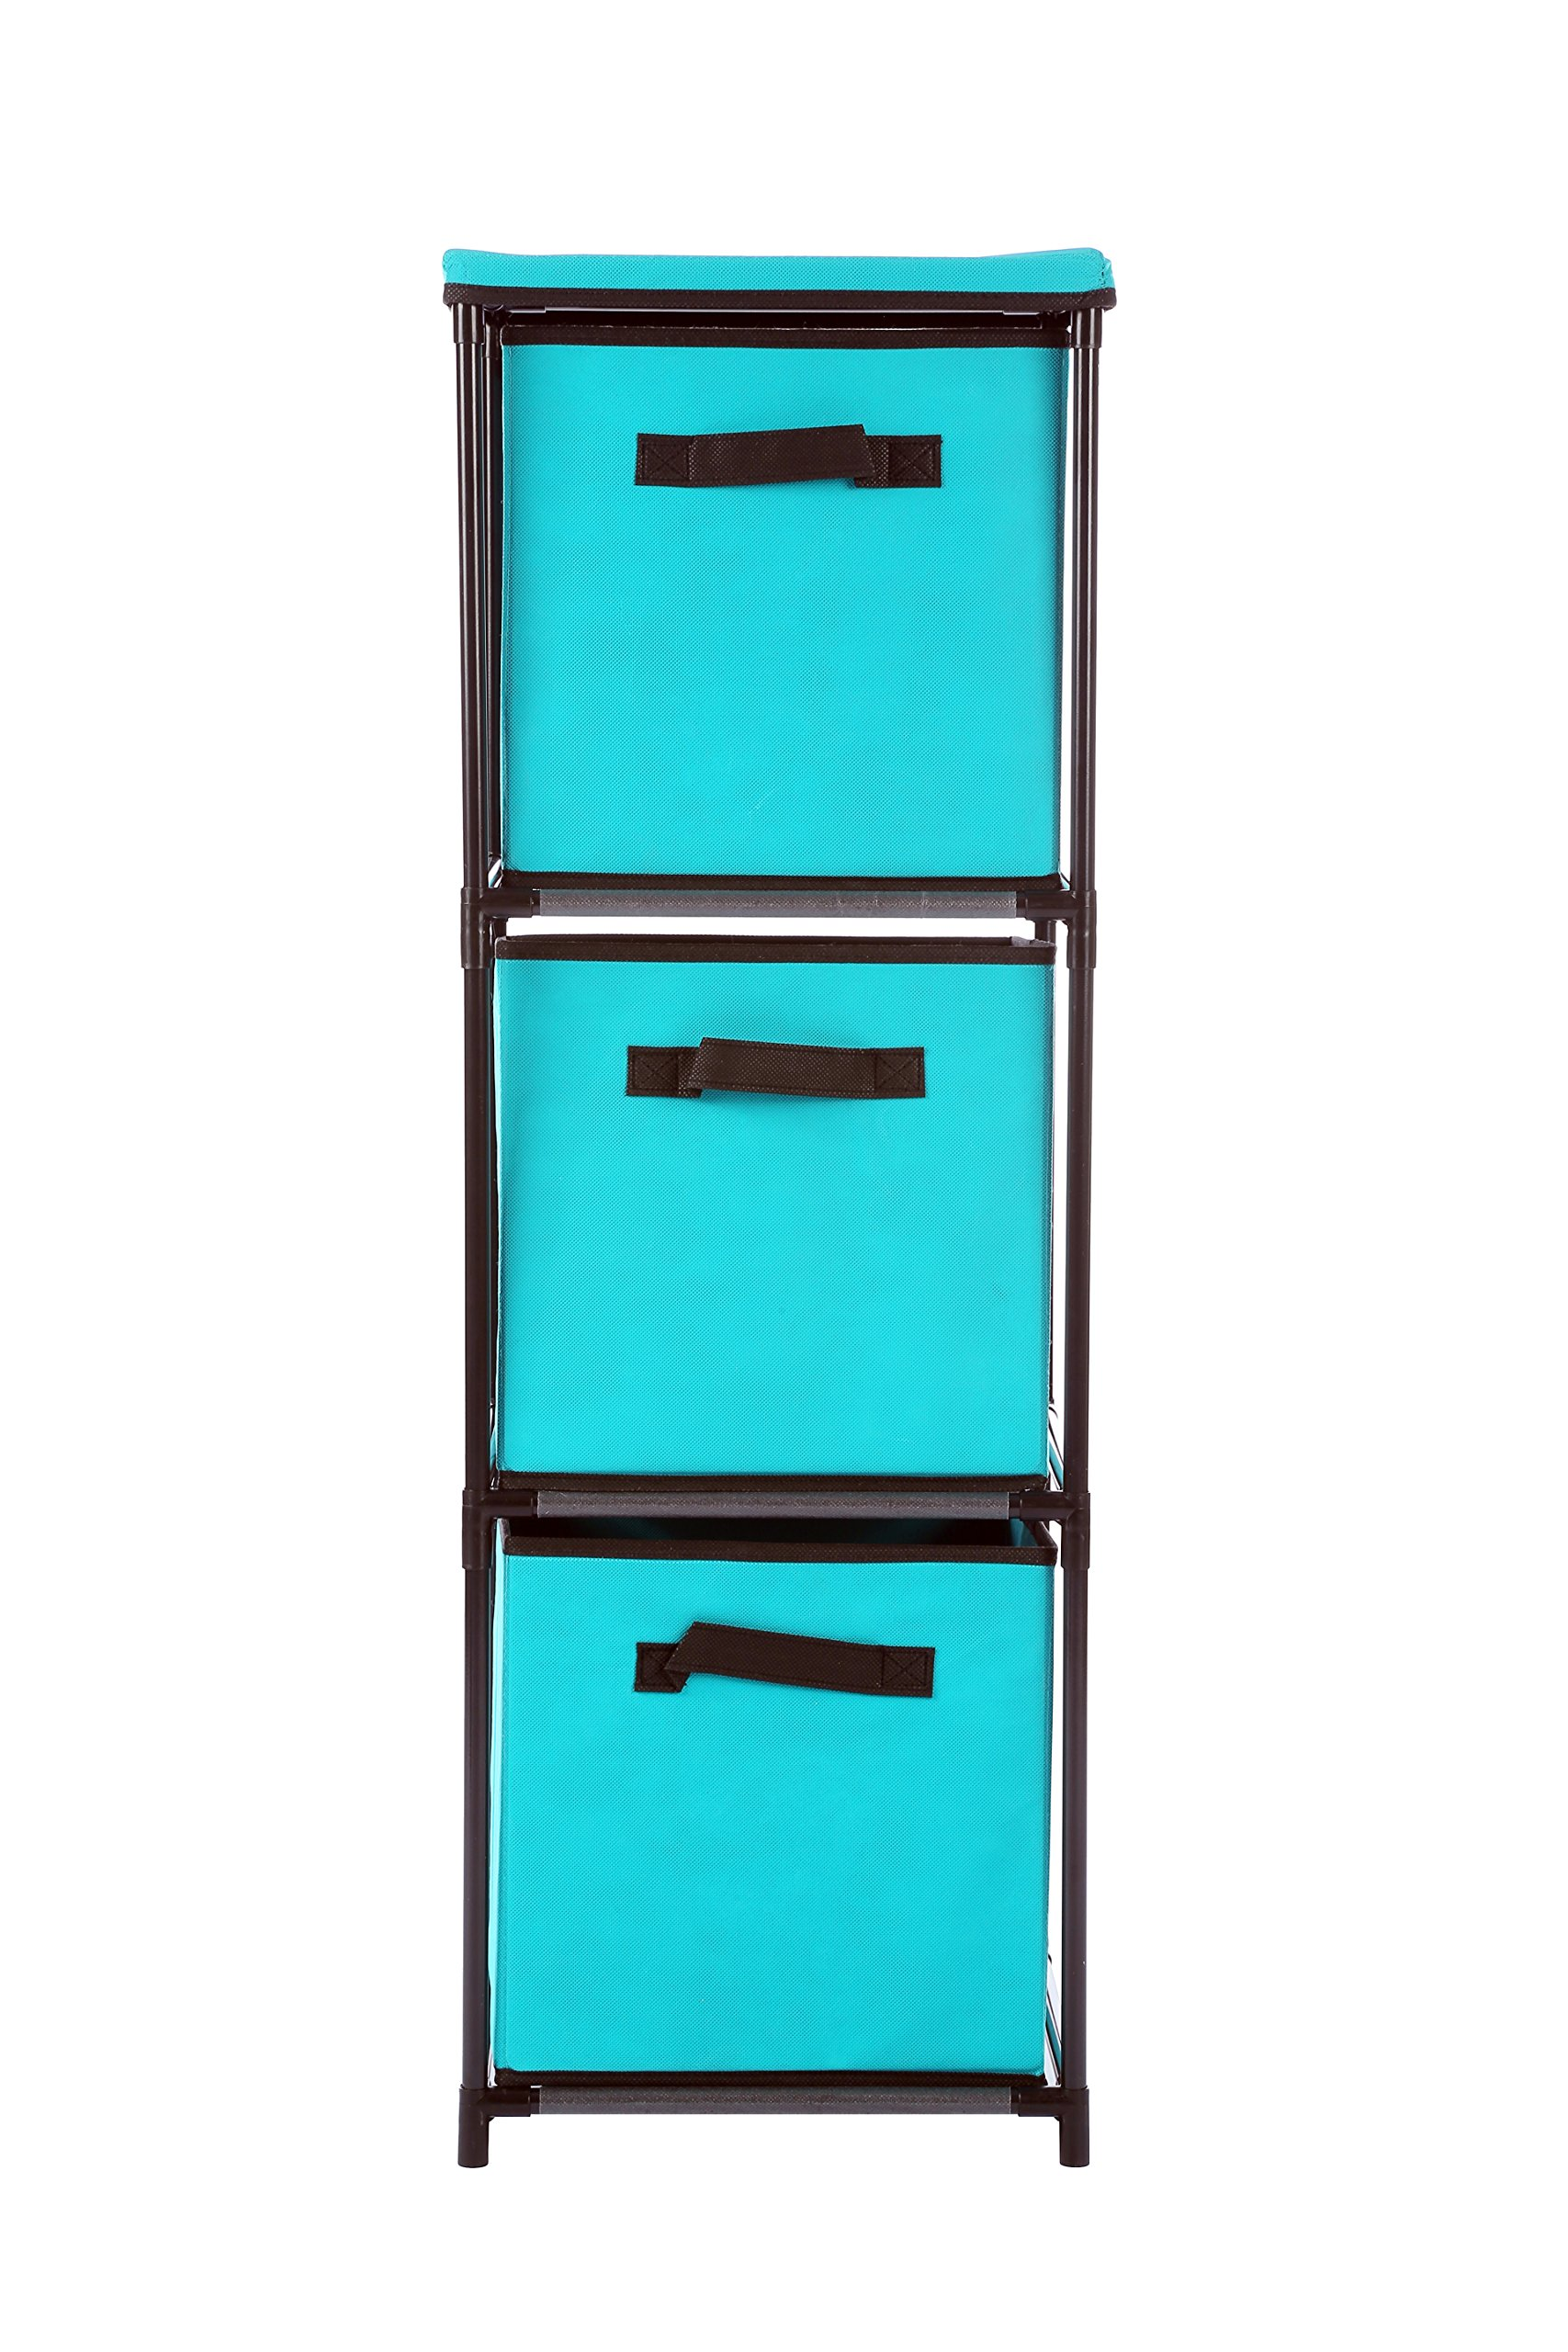 Home-Like 3-Drawer Chest Multi-Bin Toy Organizer Nursery Storage Tower Multi-Purpose Cabinet 3 Tier Metal Shelf with 3 Fabric Collapsible Bins Suit for Closet Bedroom Entryway(3 Drawer-Turquoise)